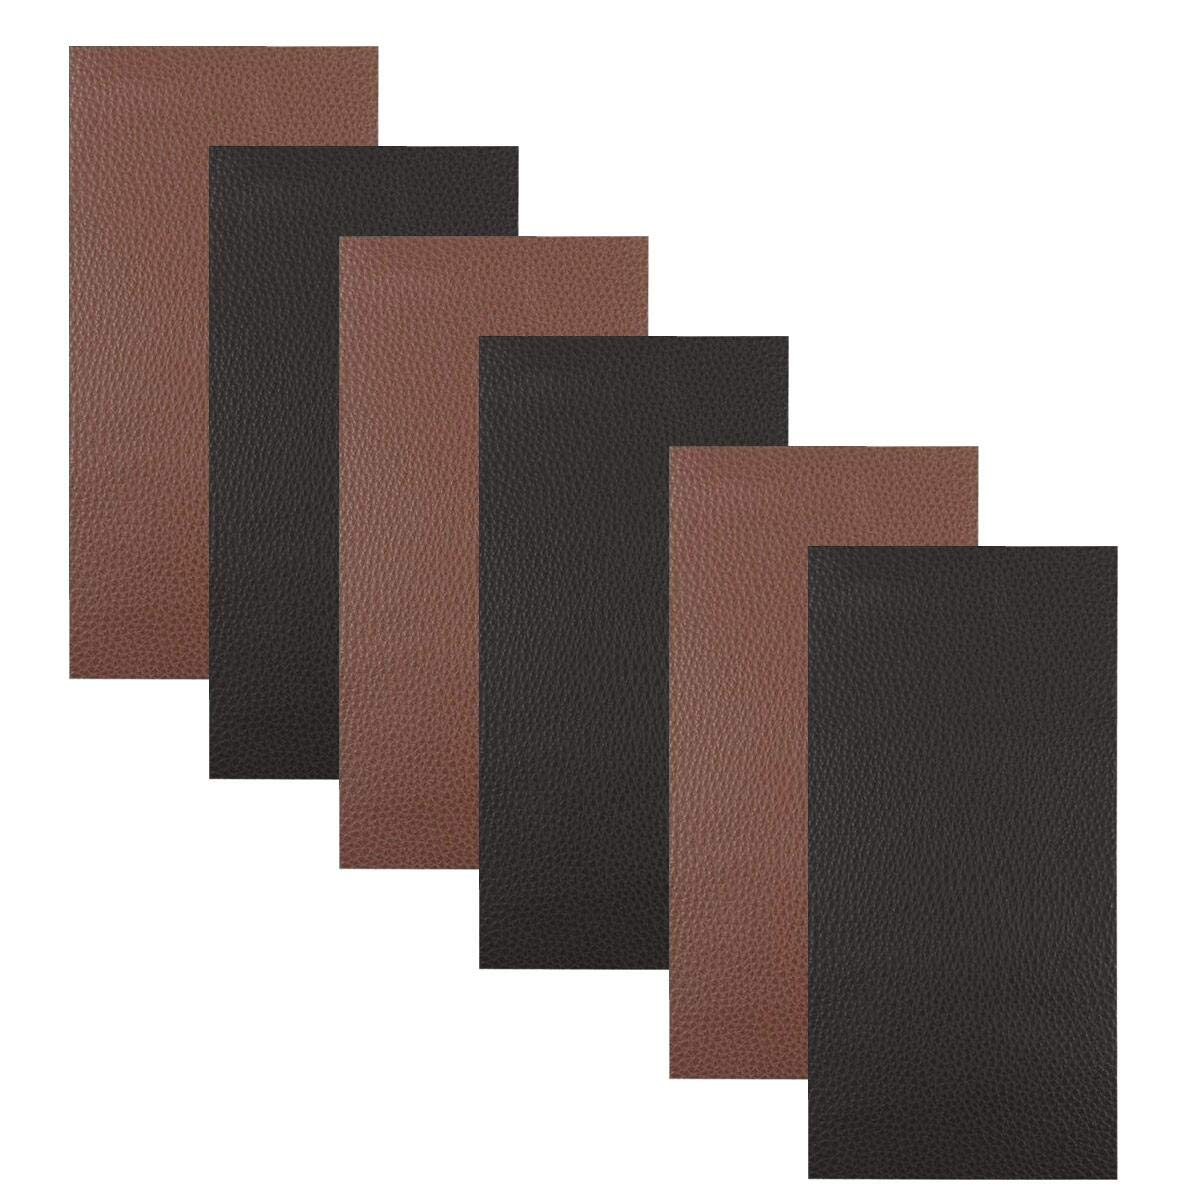 TSLIKANDO 6 Pieces Leather Repair Patch, Leather Self Adhesive Patch for Sofas Couch Handbags Jackets Car Seats, 8 x 11 inches, Brown and Black